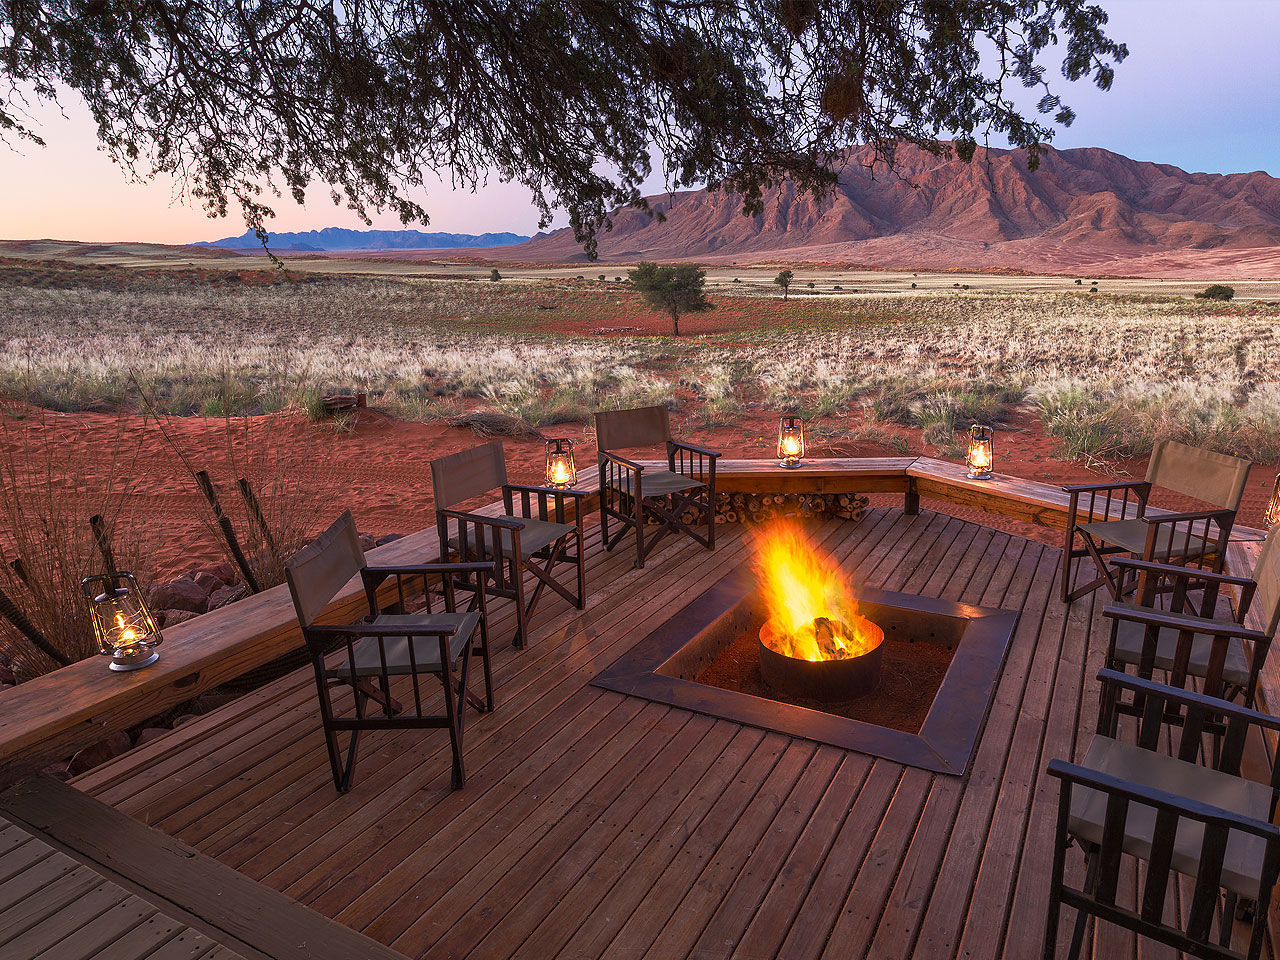 A view at sunset from the fire pit and deck at Wolwedans Dunes Camp over the waterhole and surrounding mountains.